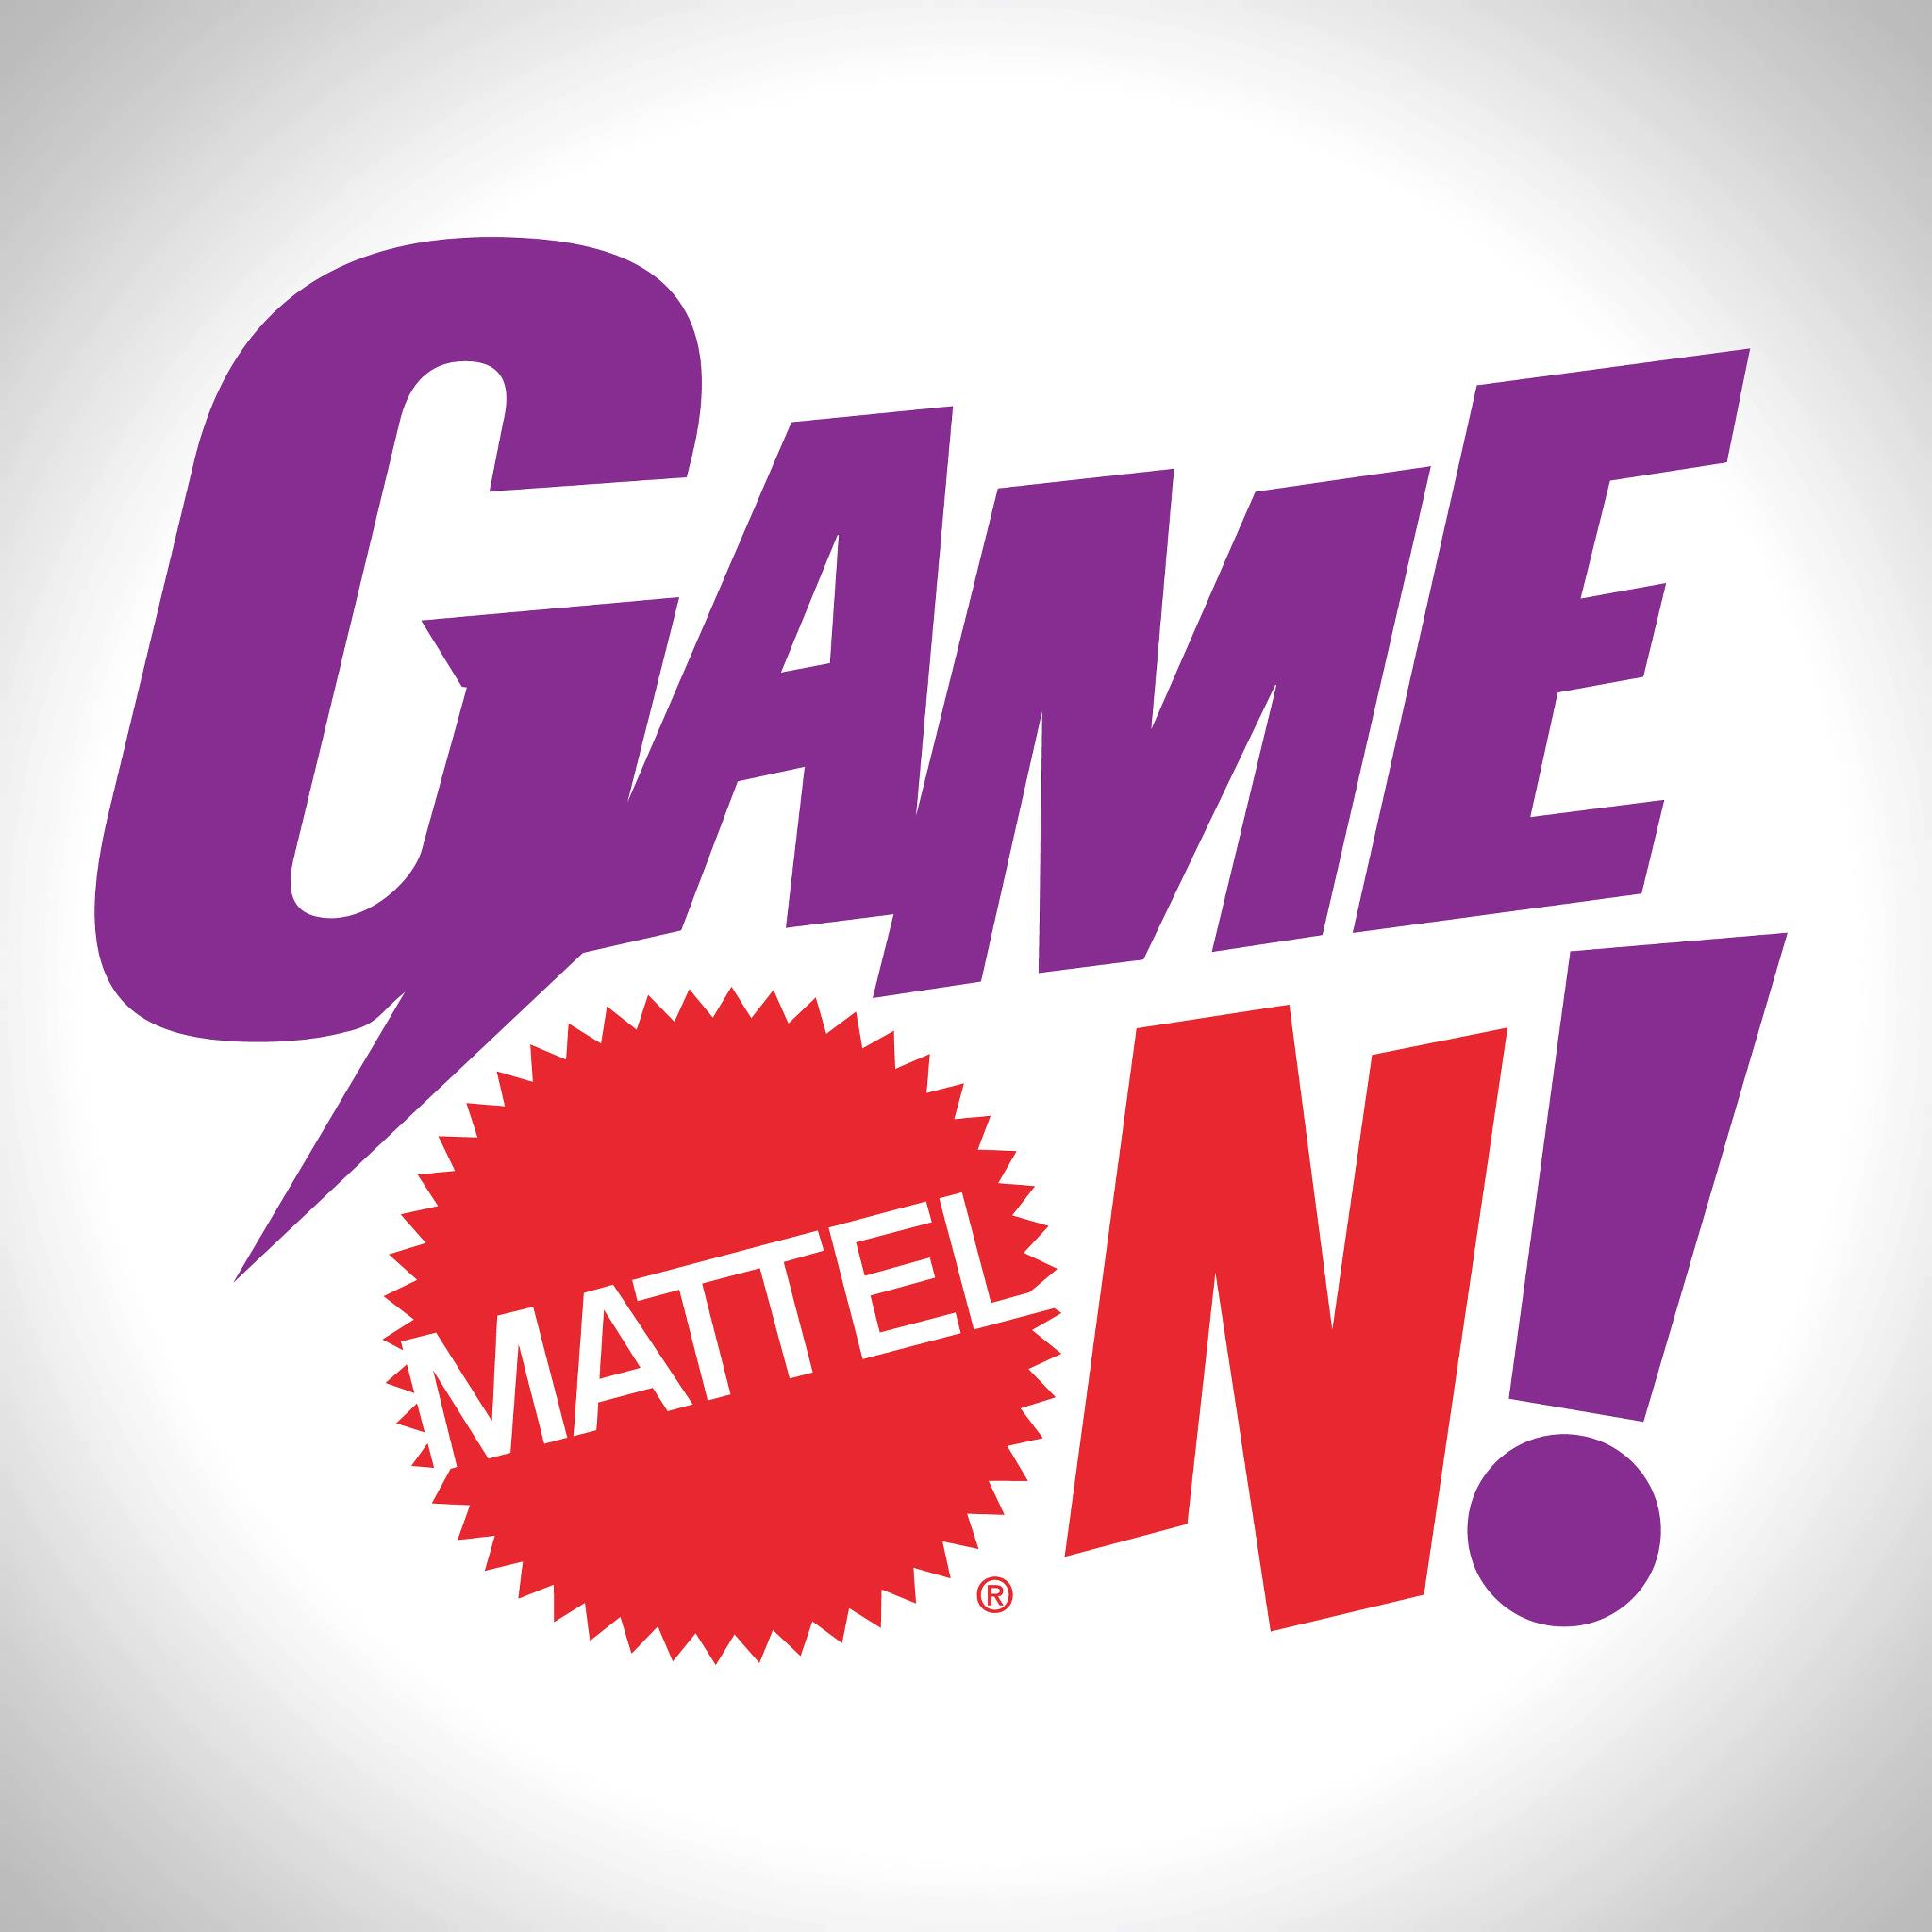 Check Out Our #GameOnParty: Have a Fun Family Night and Win a Family Game Night Kit from Mattel!